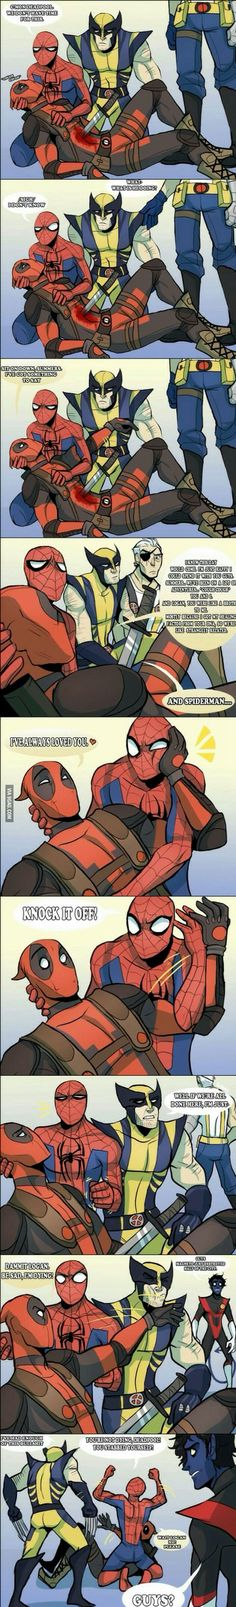 This is just Hilarious. Deadpool just Rules. #BringTheNoise #That'sMyJam